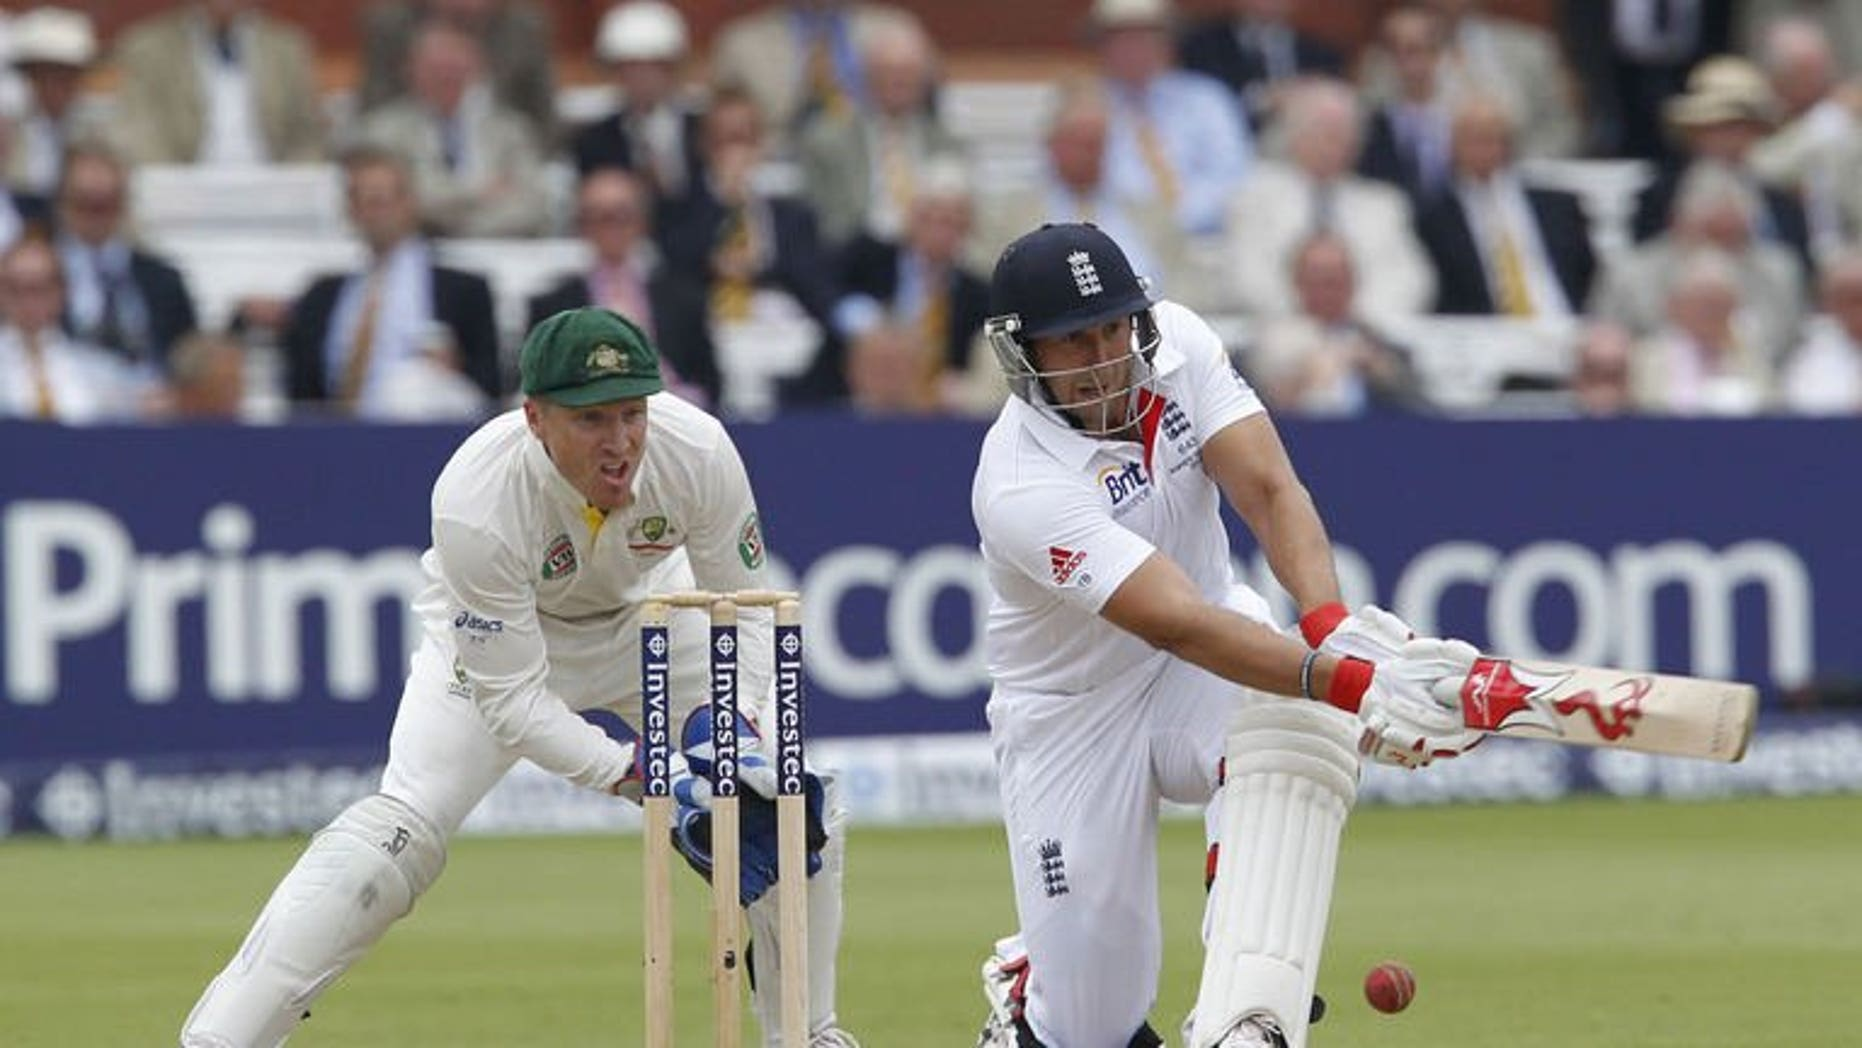 England's Tim Bresnan (right) plays a shot watched by Australia's wicketkeeper Brad Haddin during the third day of the second Ashes Test at Lord's in London, on July 20, 2013. England were 114 for three in their second innings, a lead of 347 runs, at lunch.